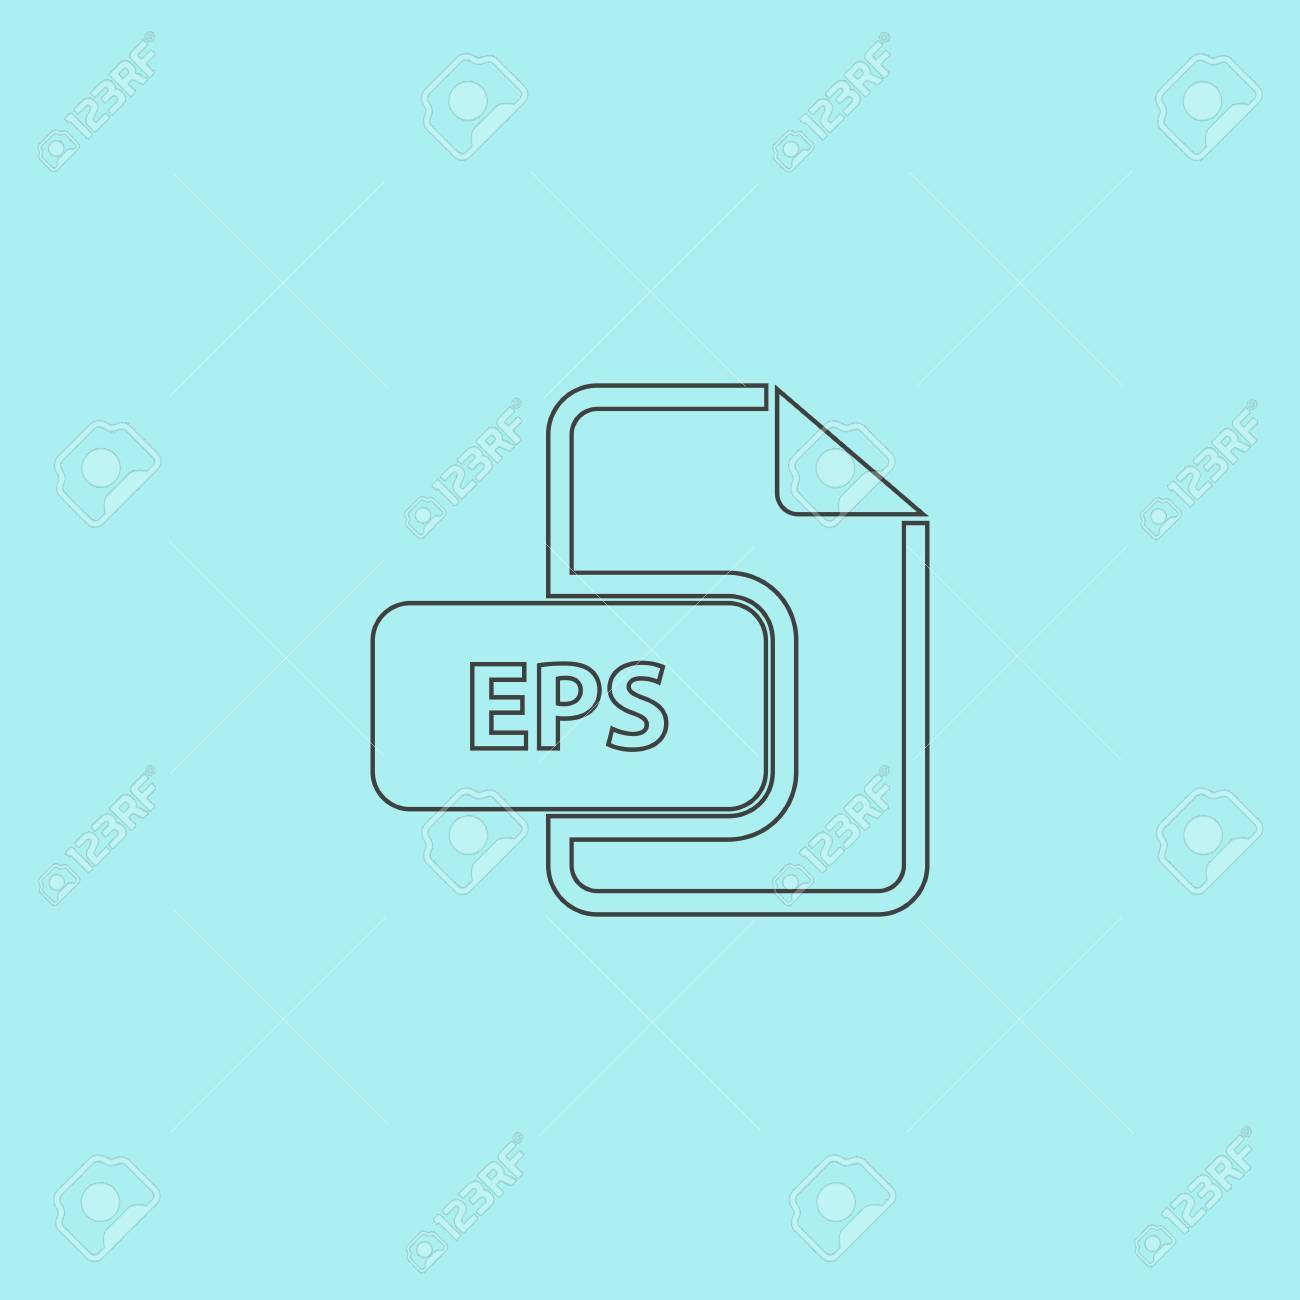 eps vector file extension simple outline flat vector icon isolated